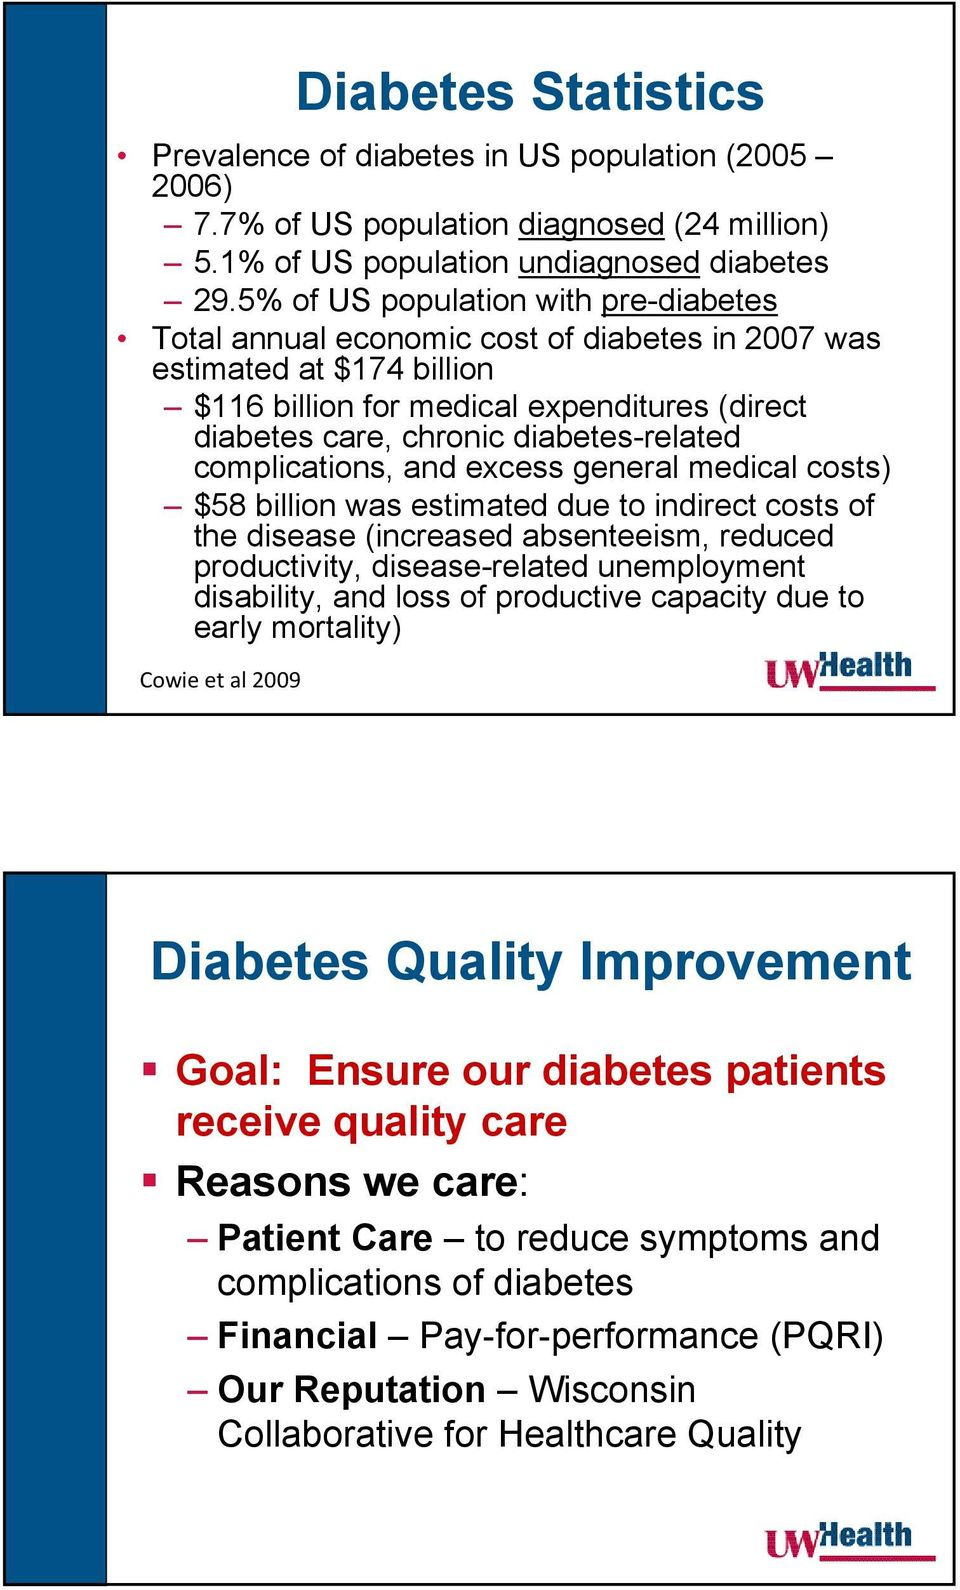 diabetes-related complications, and excess general medical costs) $58 billion was estimated due to indirect costs of the disease (increased absenteeism, reduced productivity, disease-related